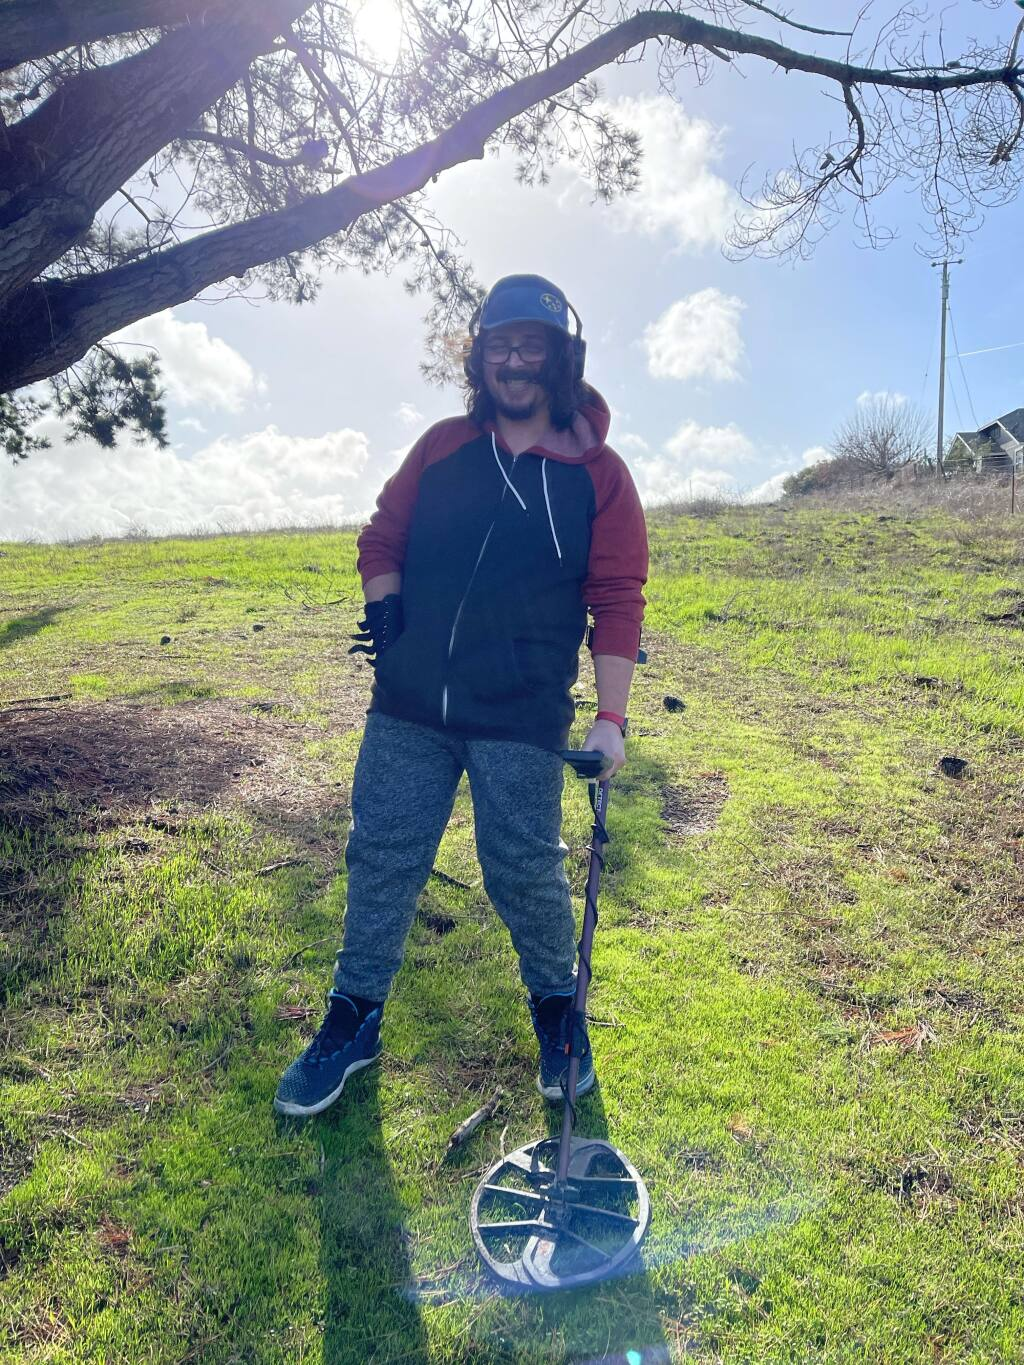 Petaluma's Woodrow Engle helps find lost rings and other valuables (Woodrow Engle)